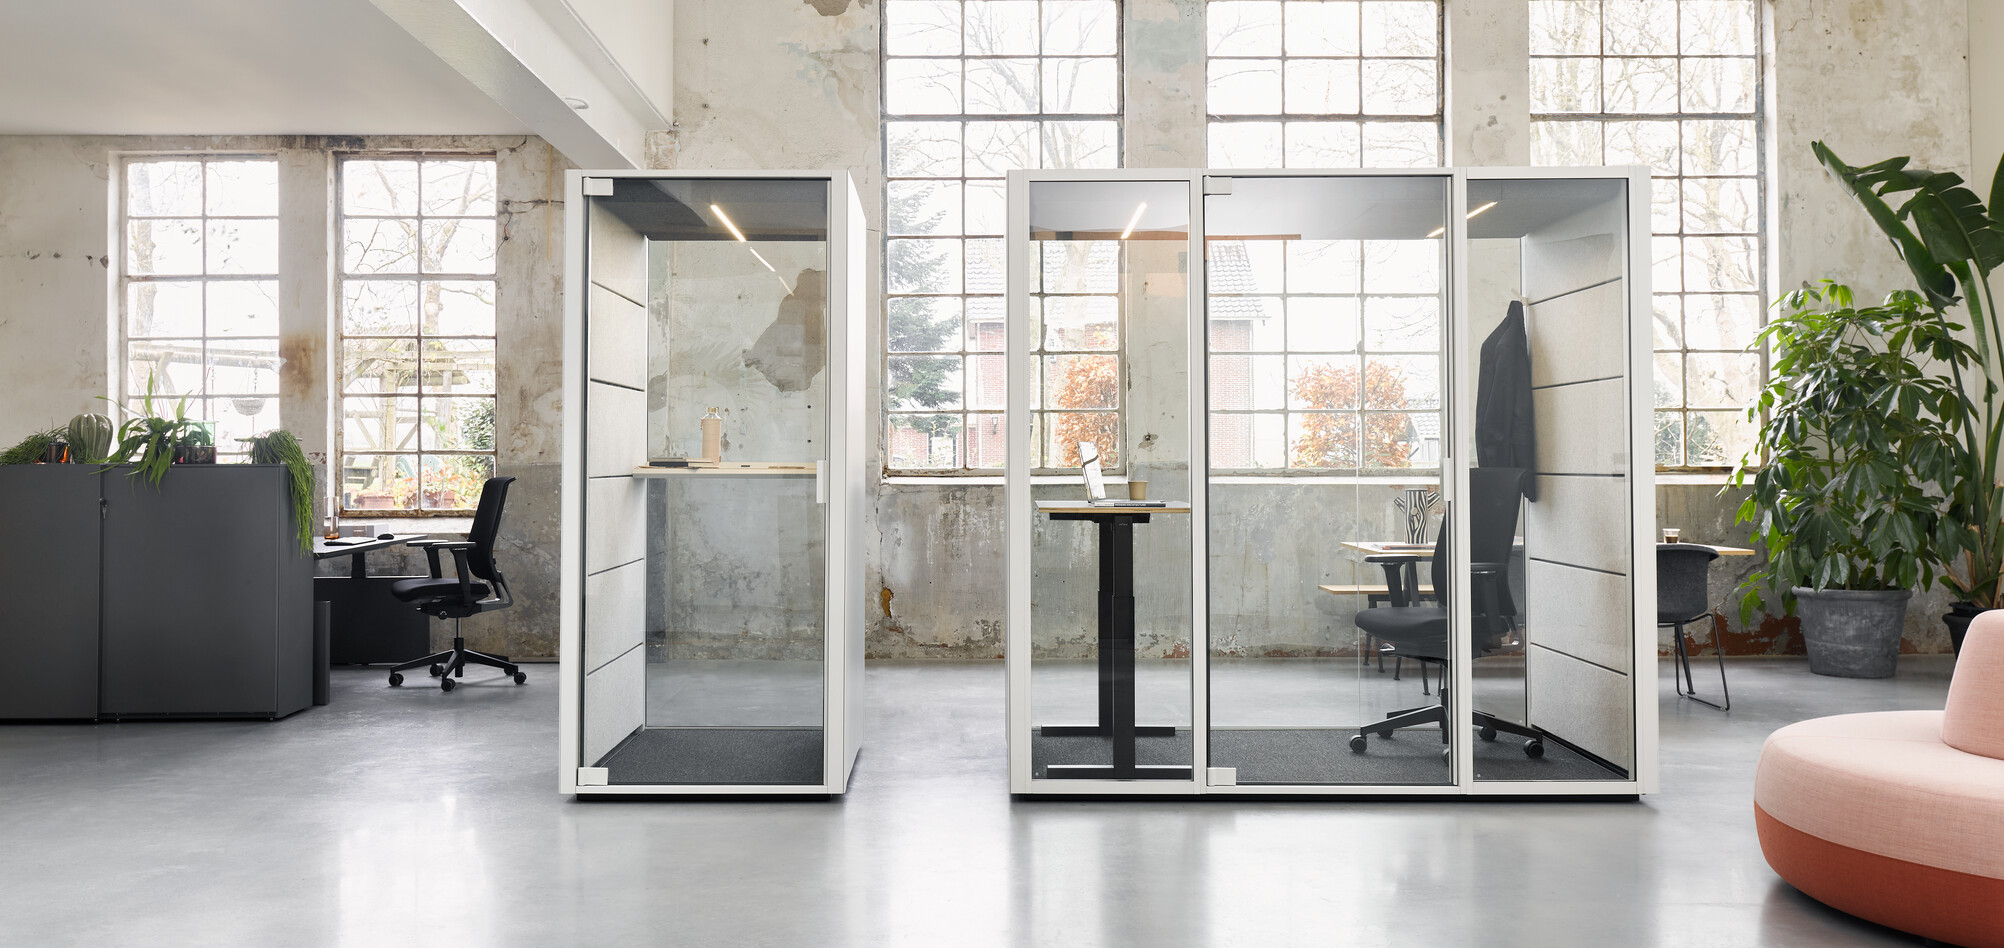 Ahrend Qabin booth and space in space with Ease office chair and black stand desk with Balance SDK Recharge and Well in a Hybrid working community setting